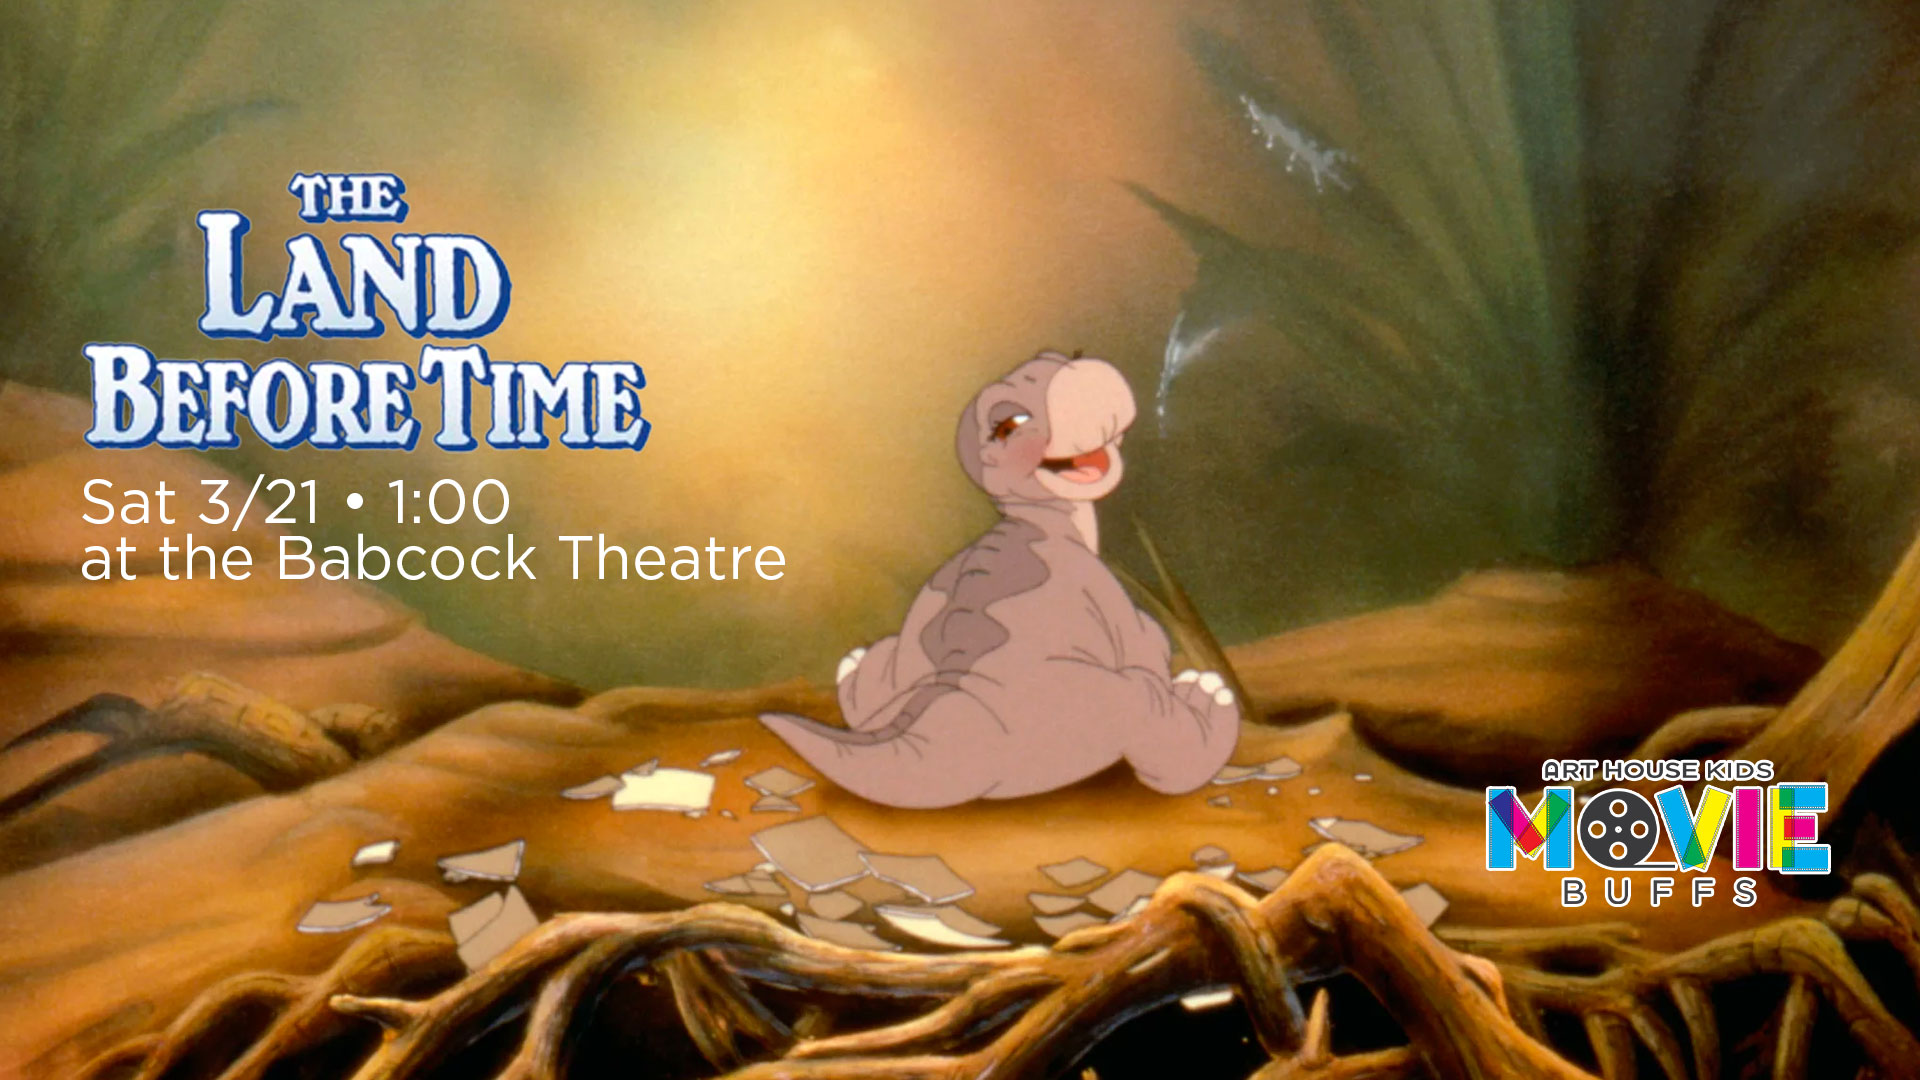 The Land Before Time Art House Kids Downtown Billings Alliance